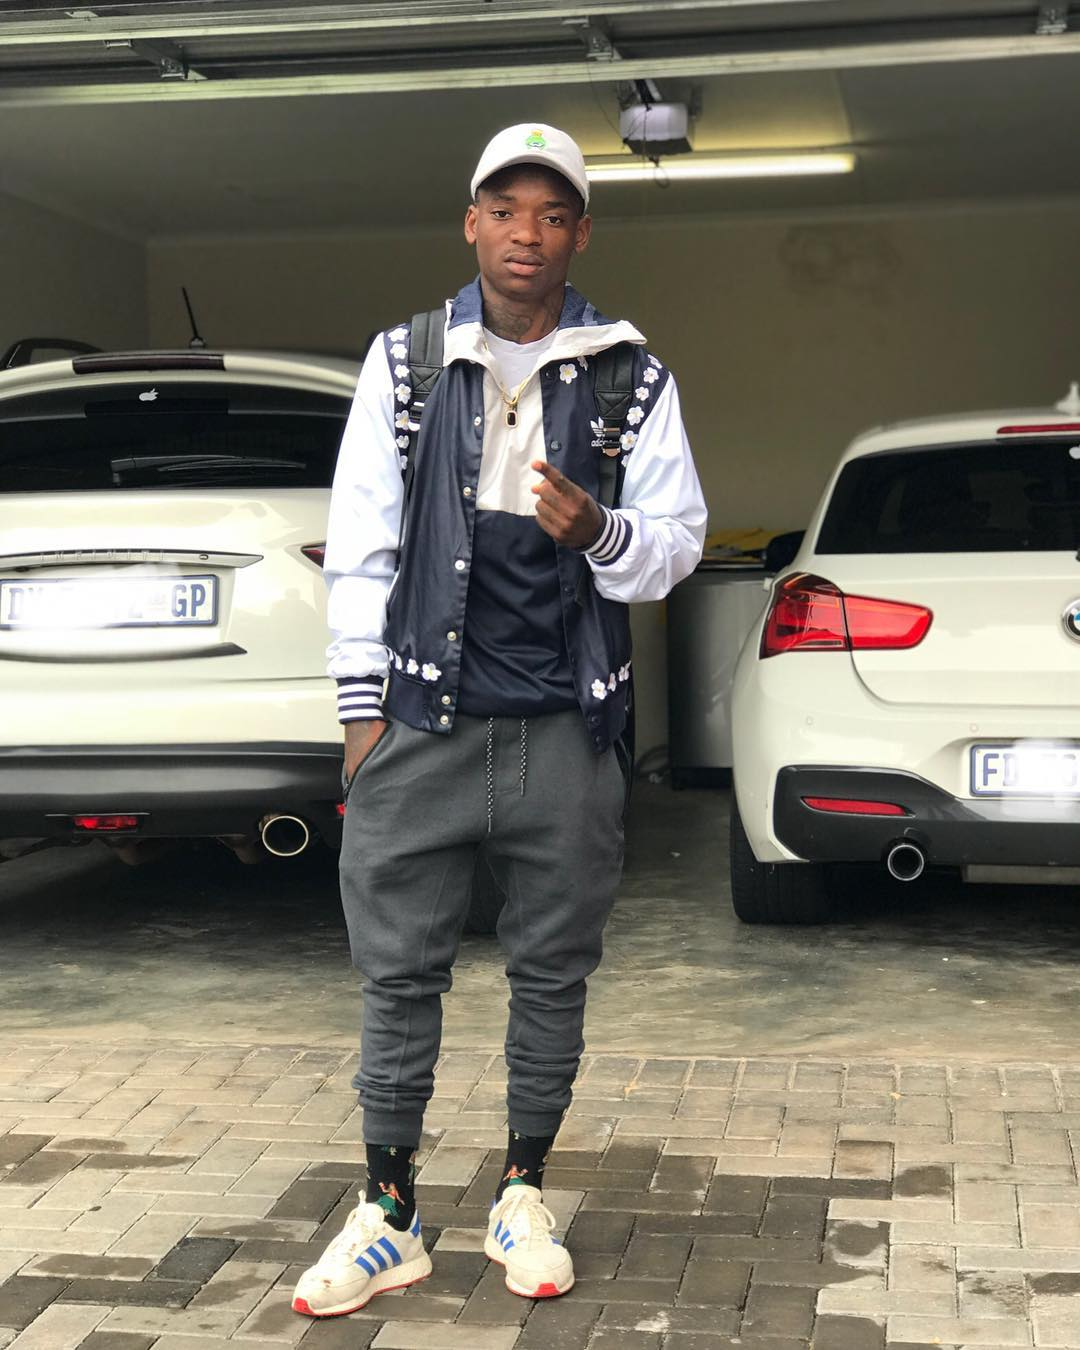 KHAMA SIGNS WITH NEW AGENT